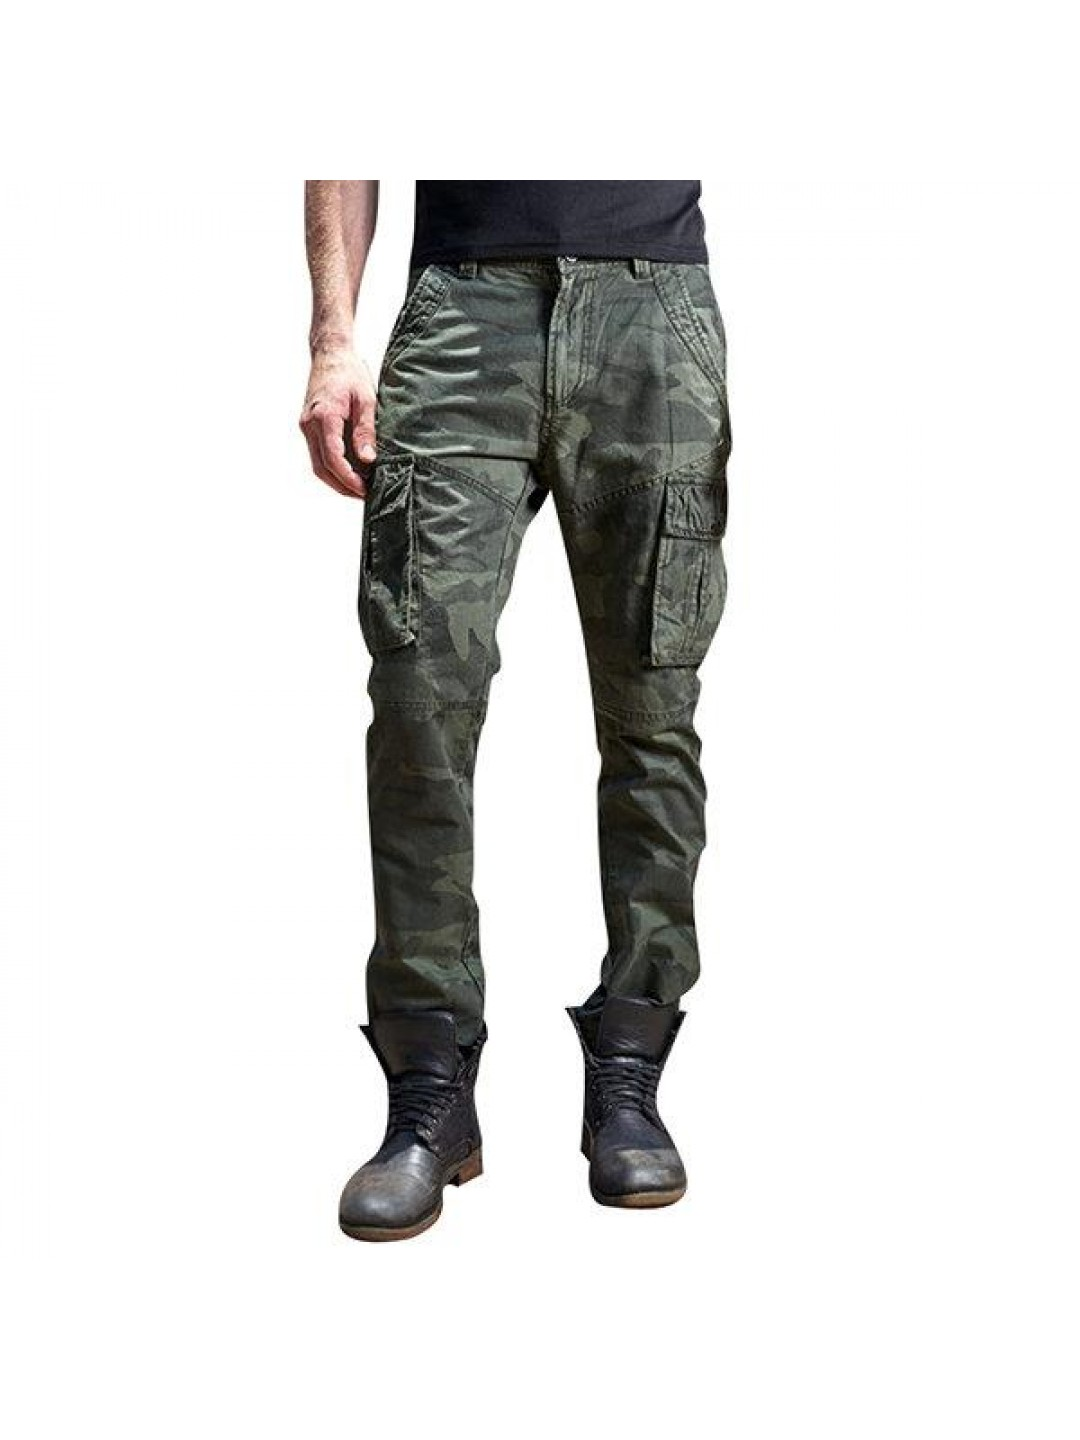 Mens Outdoor Camouflage Multi Pockets Casual Cotton Cargo Pants Military Tactical Pants